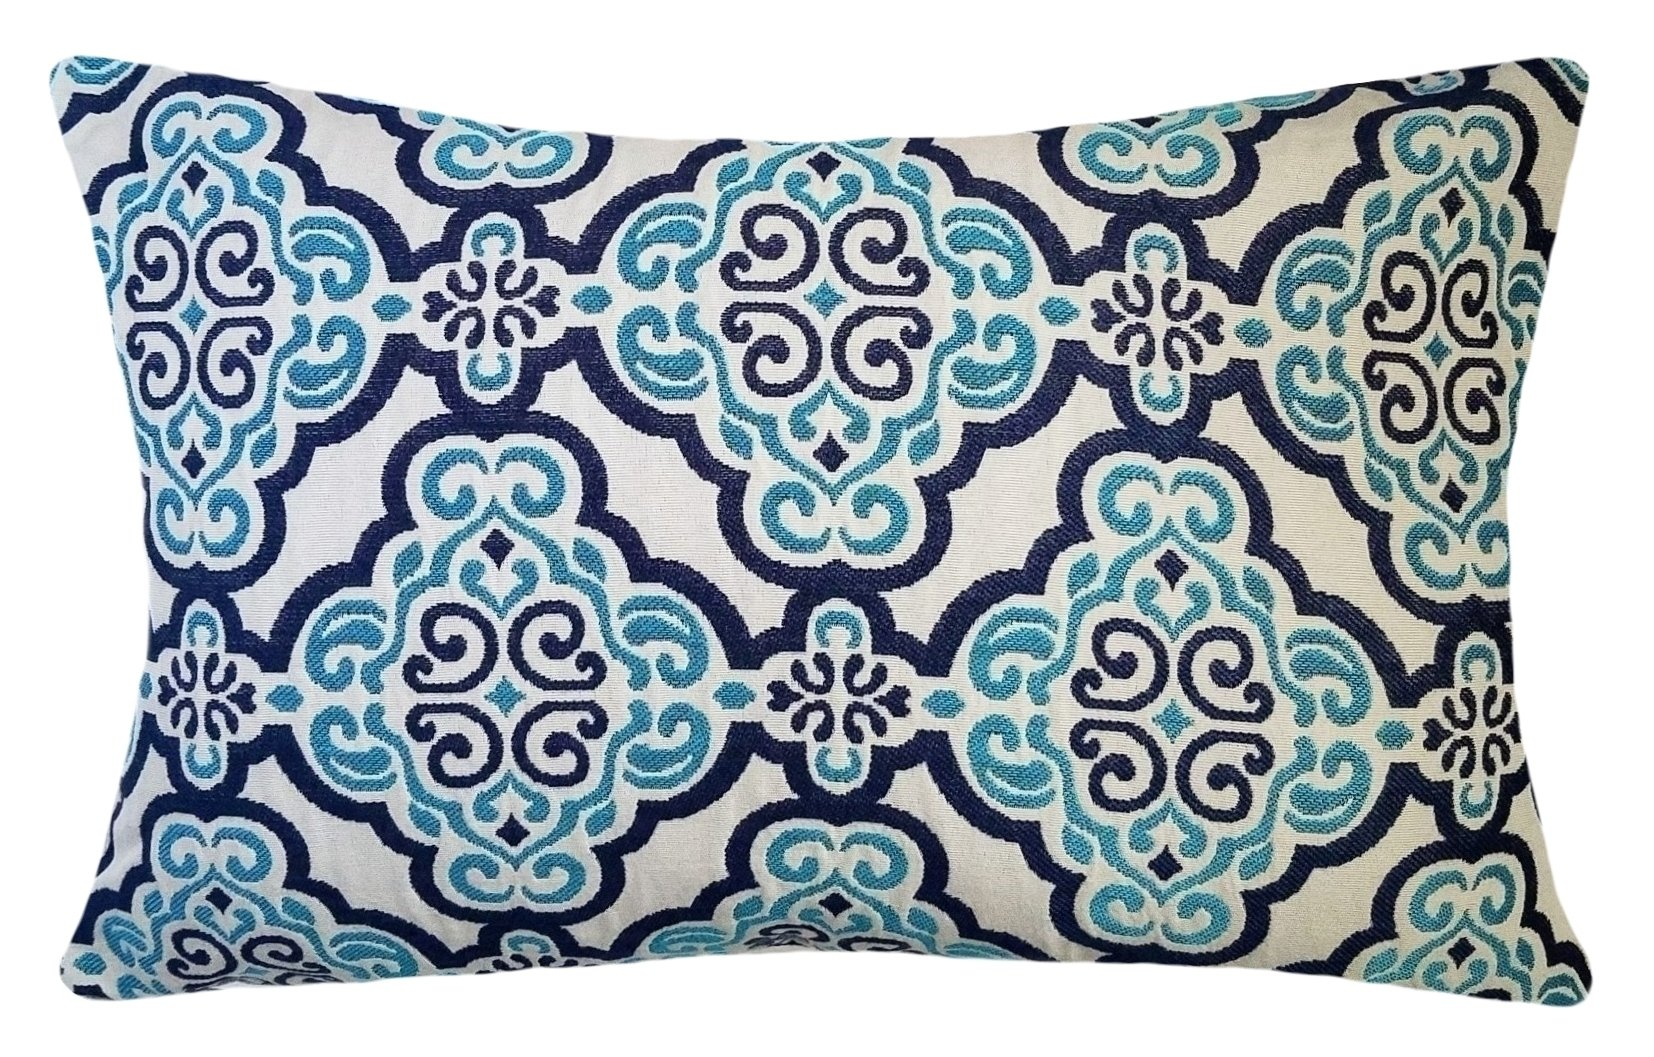 wholesale-blue-and-turquoise-medallion-pillows